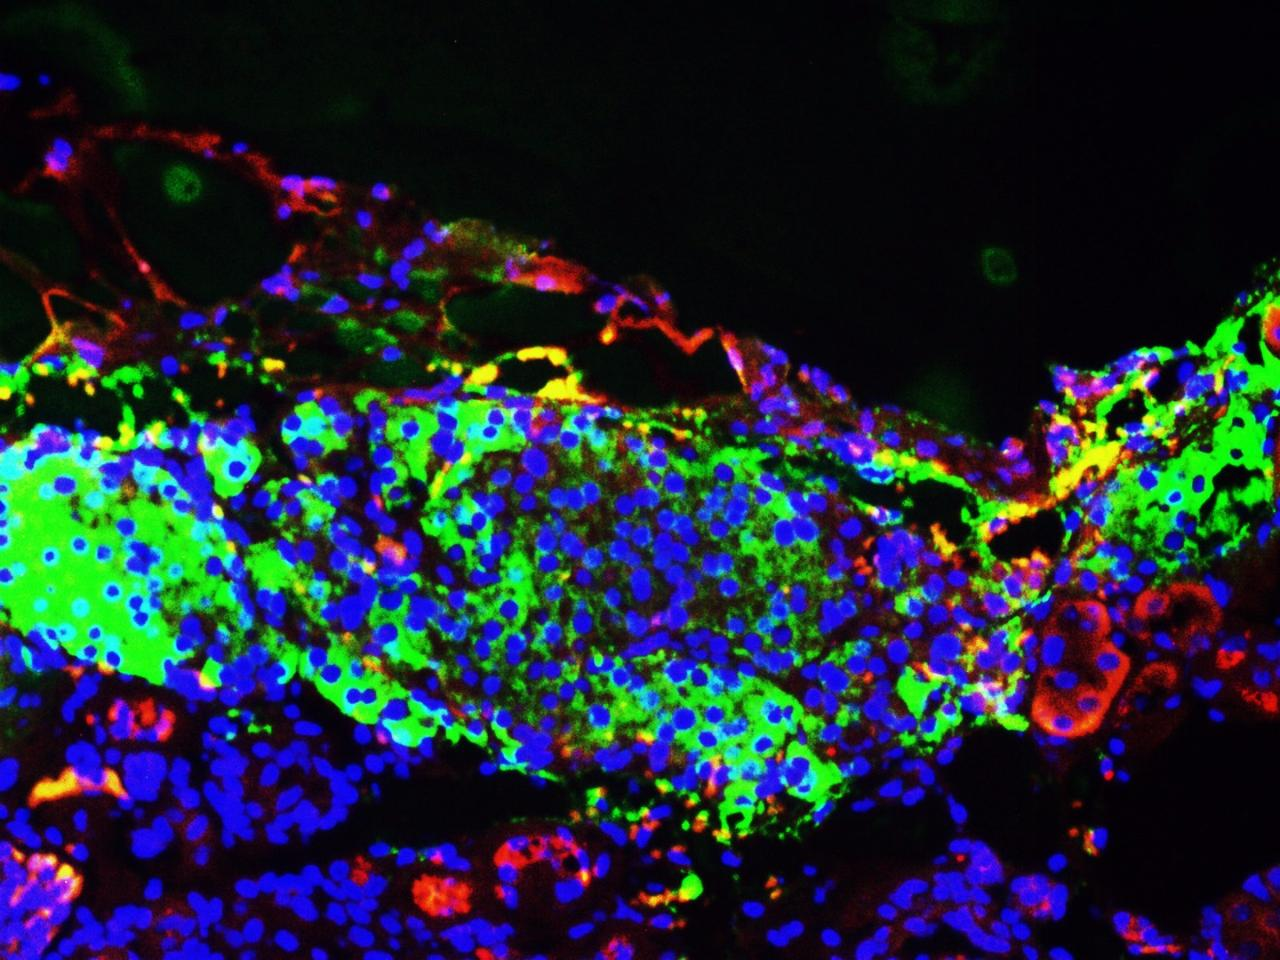 The patient-derived pancreatic beta cells respond to sugar by producing insulin, as in people without diabetes